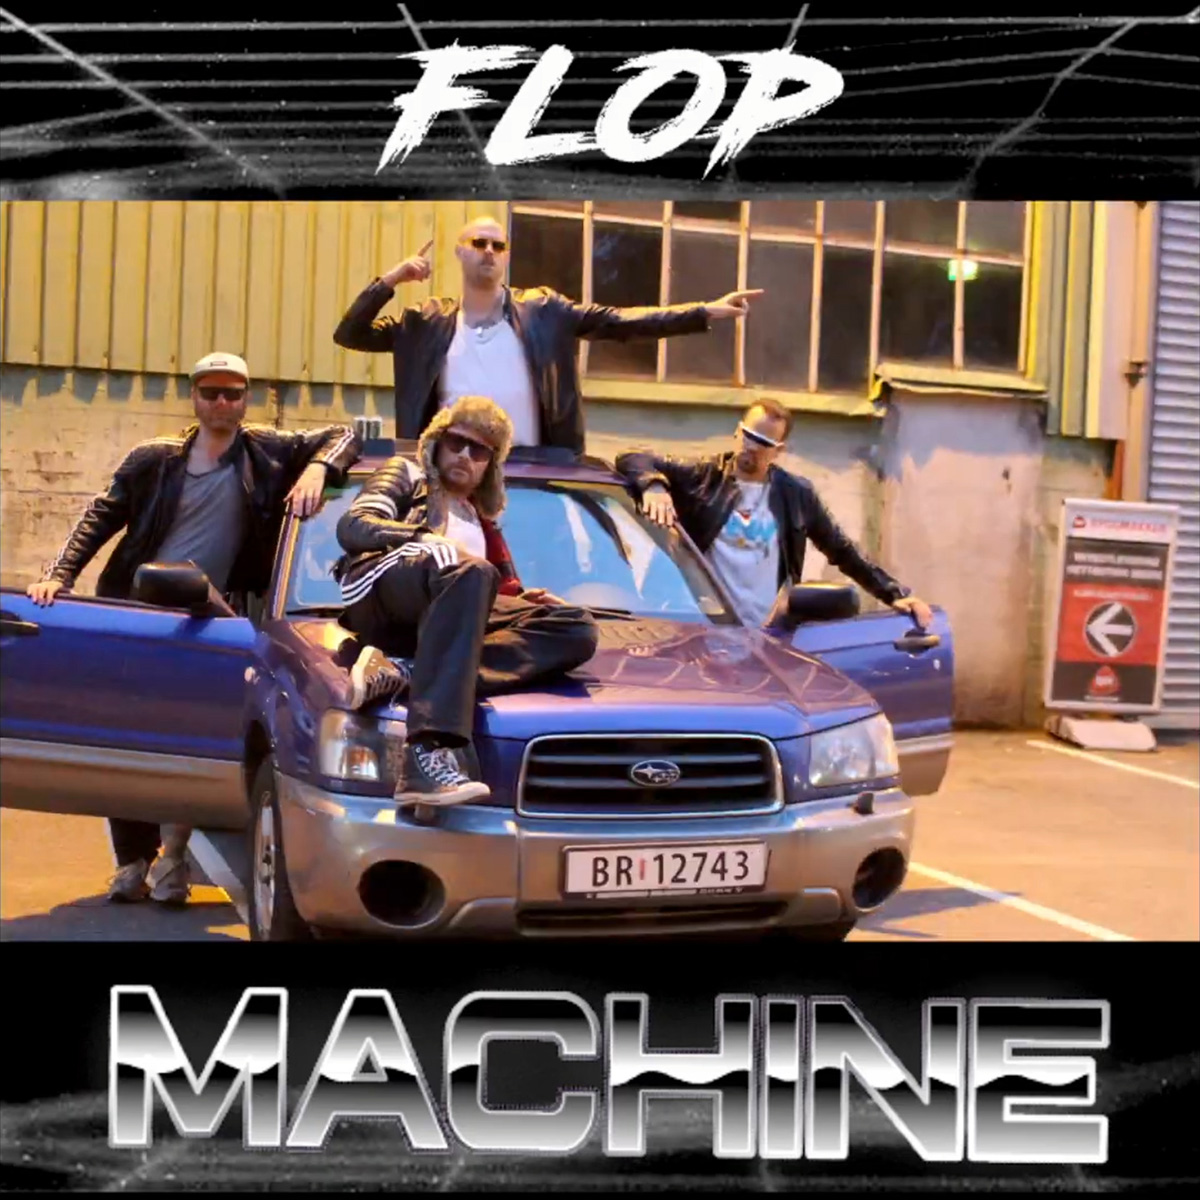 Flop Machine - Shamans, Charlatans and Shrinks